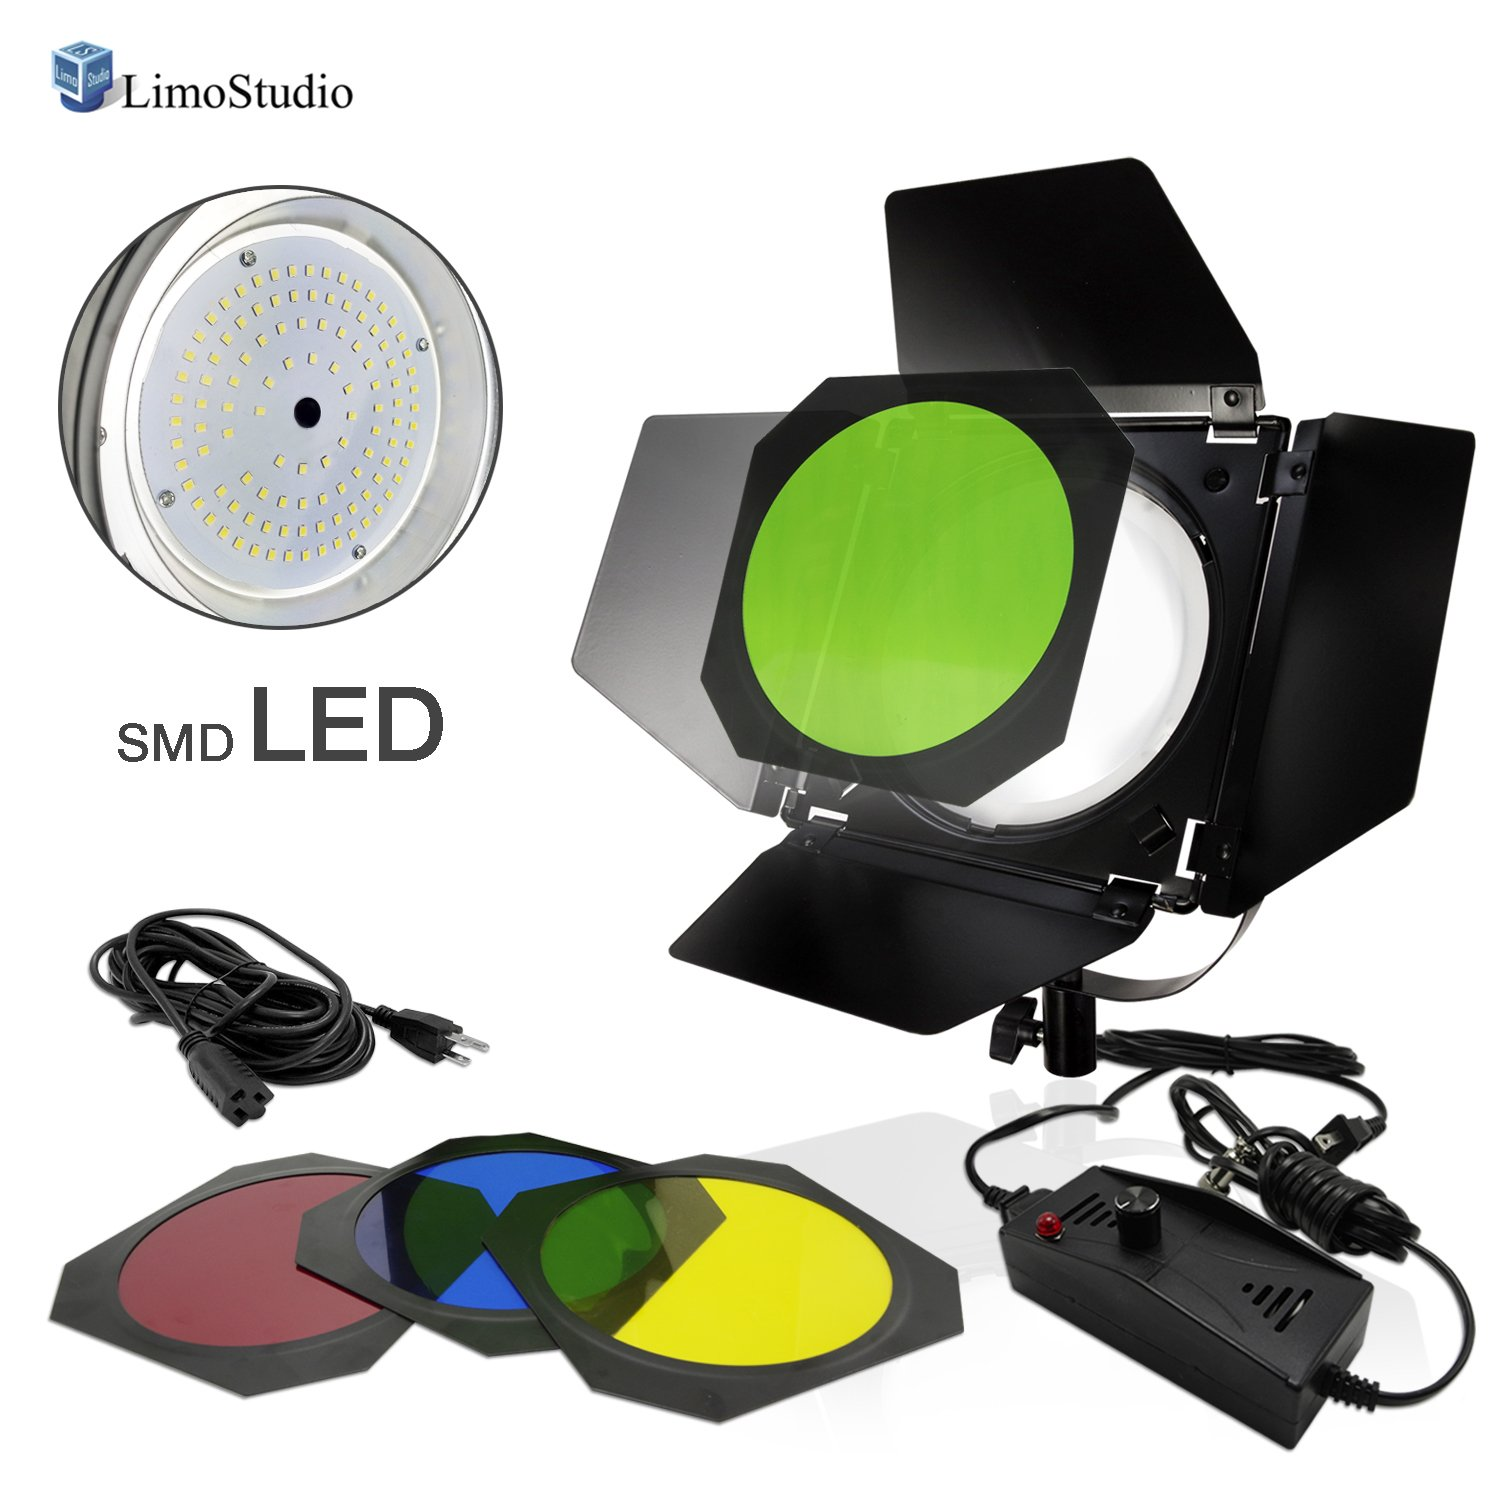 Photogaphy Photo Studio LED Barn Door Dimmable Light with 4 Color Gel Filters and Extension Cord, LMS907